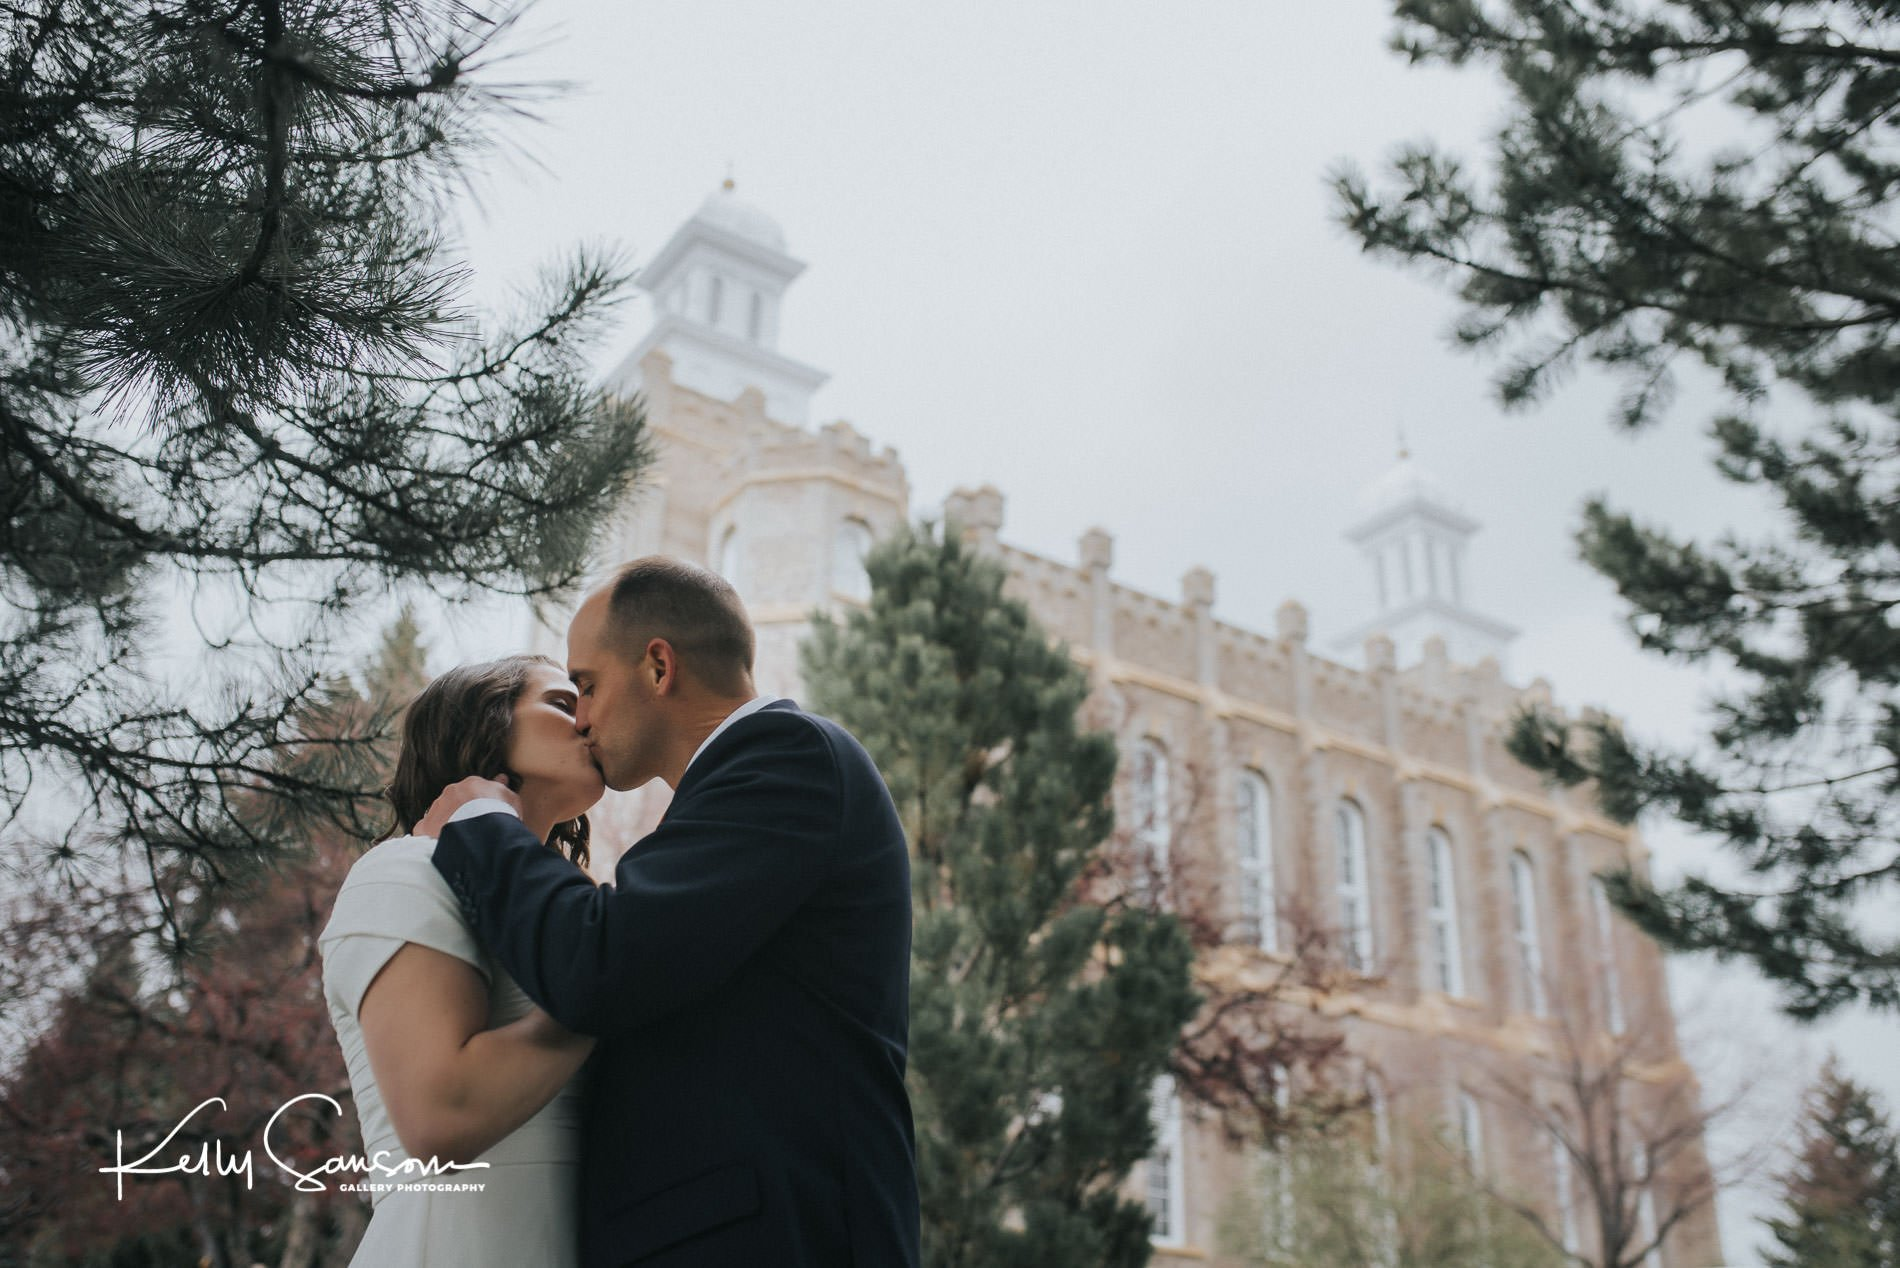 A bride and groom kissing in front of the temple for Logan temple wedding photography.